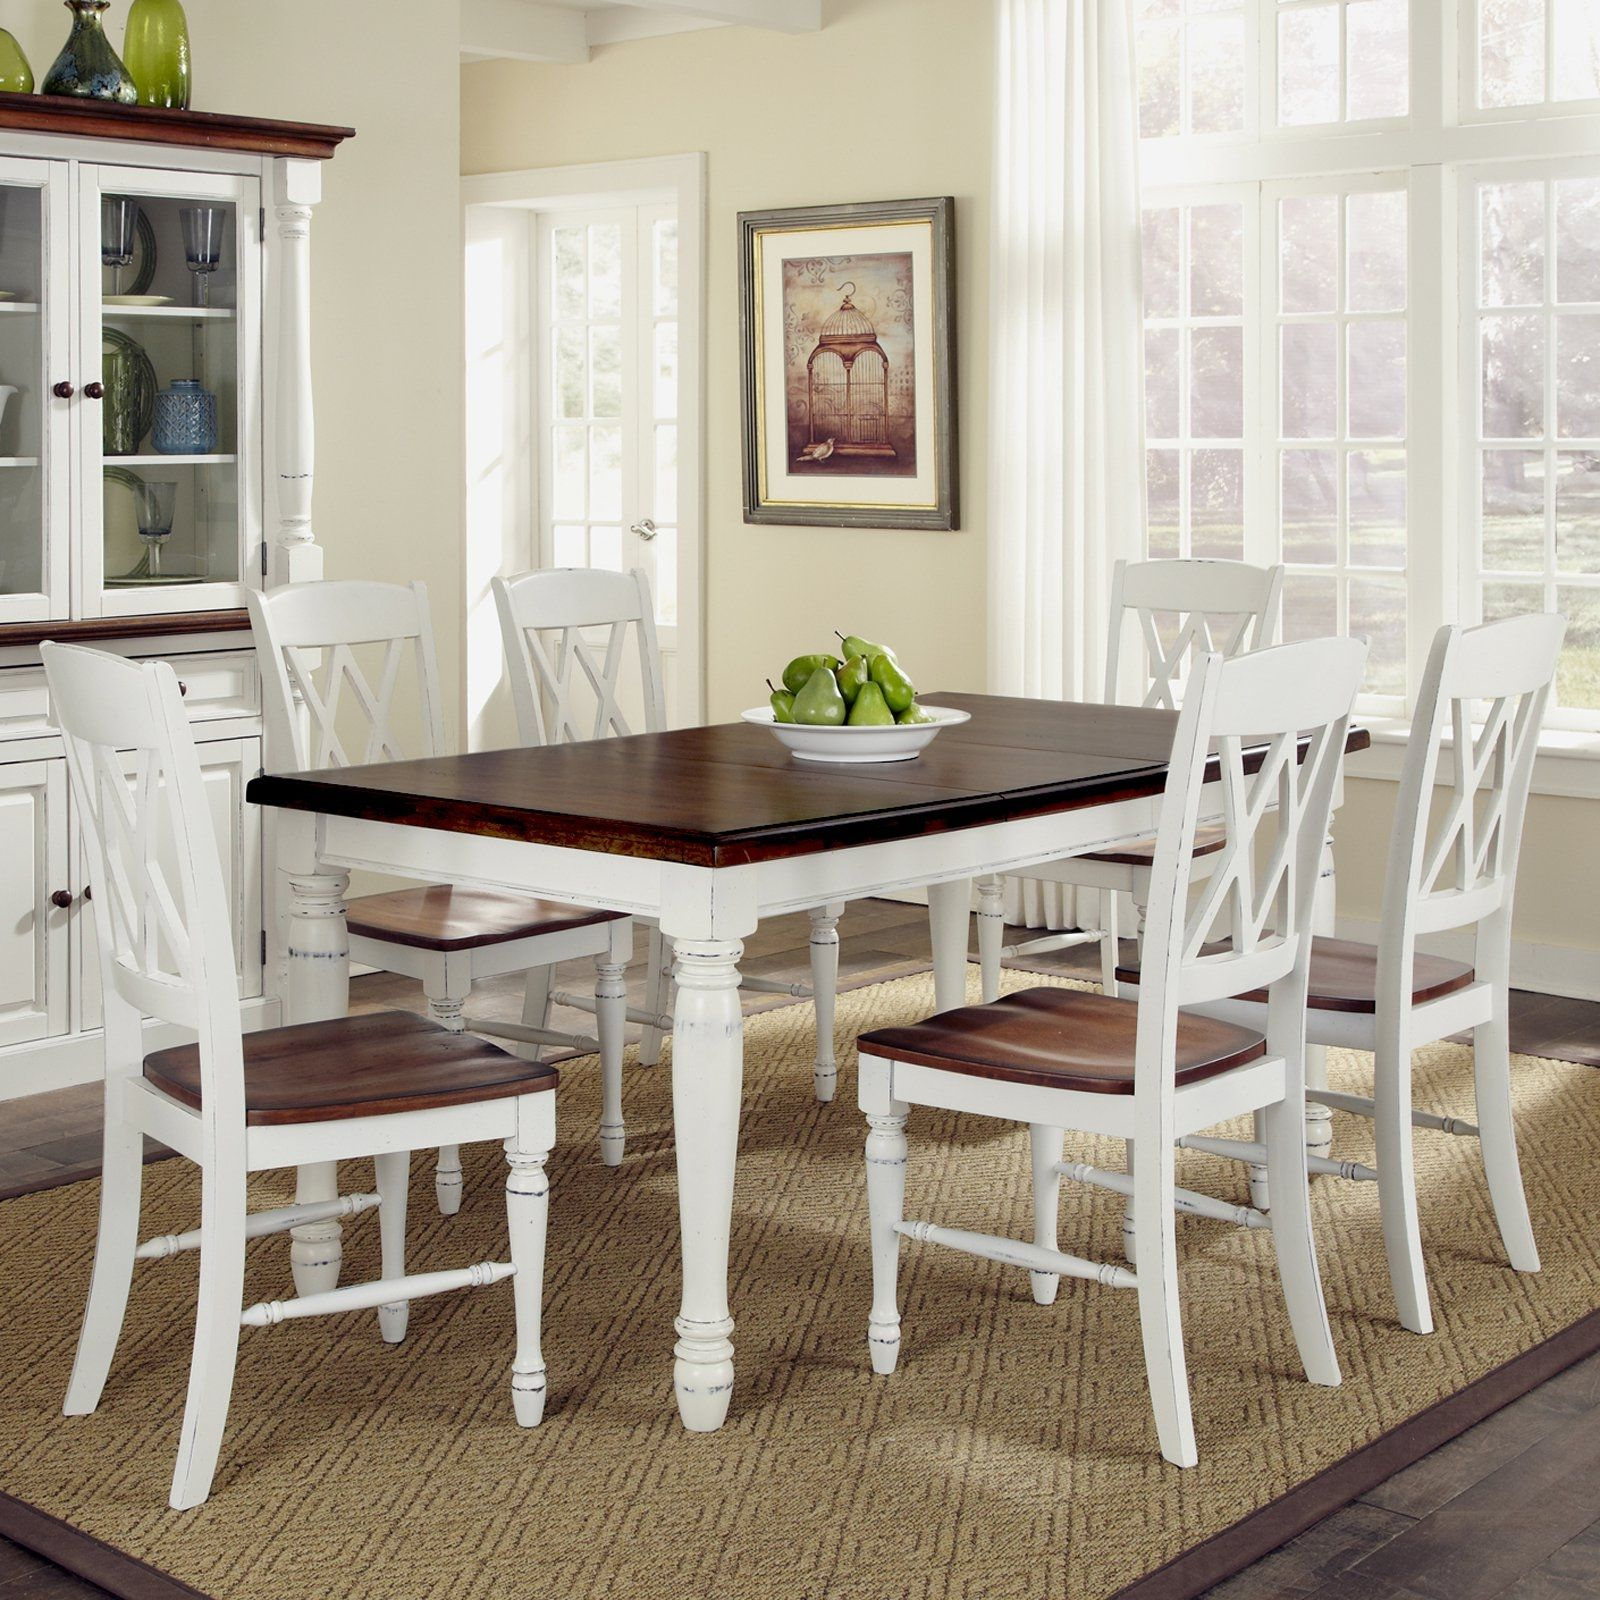 interior cottages designenglish table dining style cottage country photos design